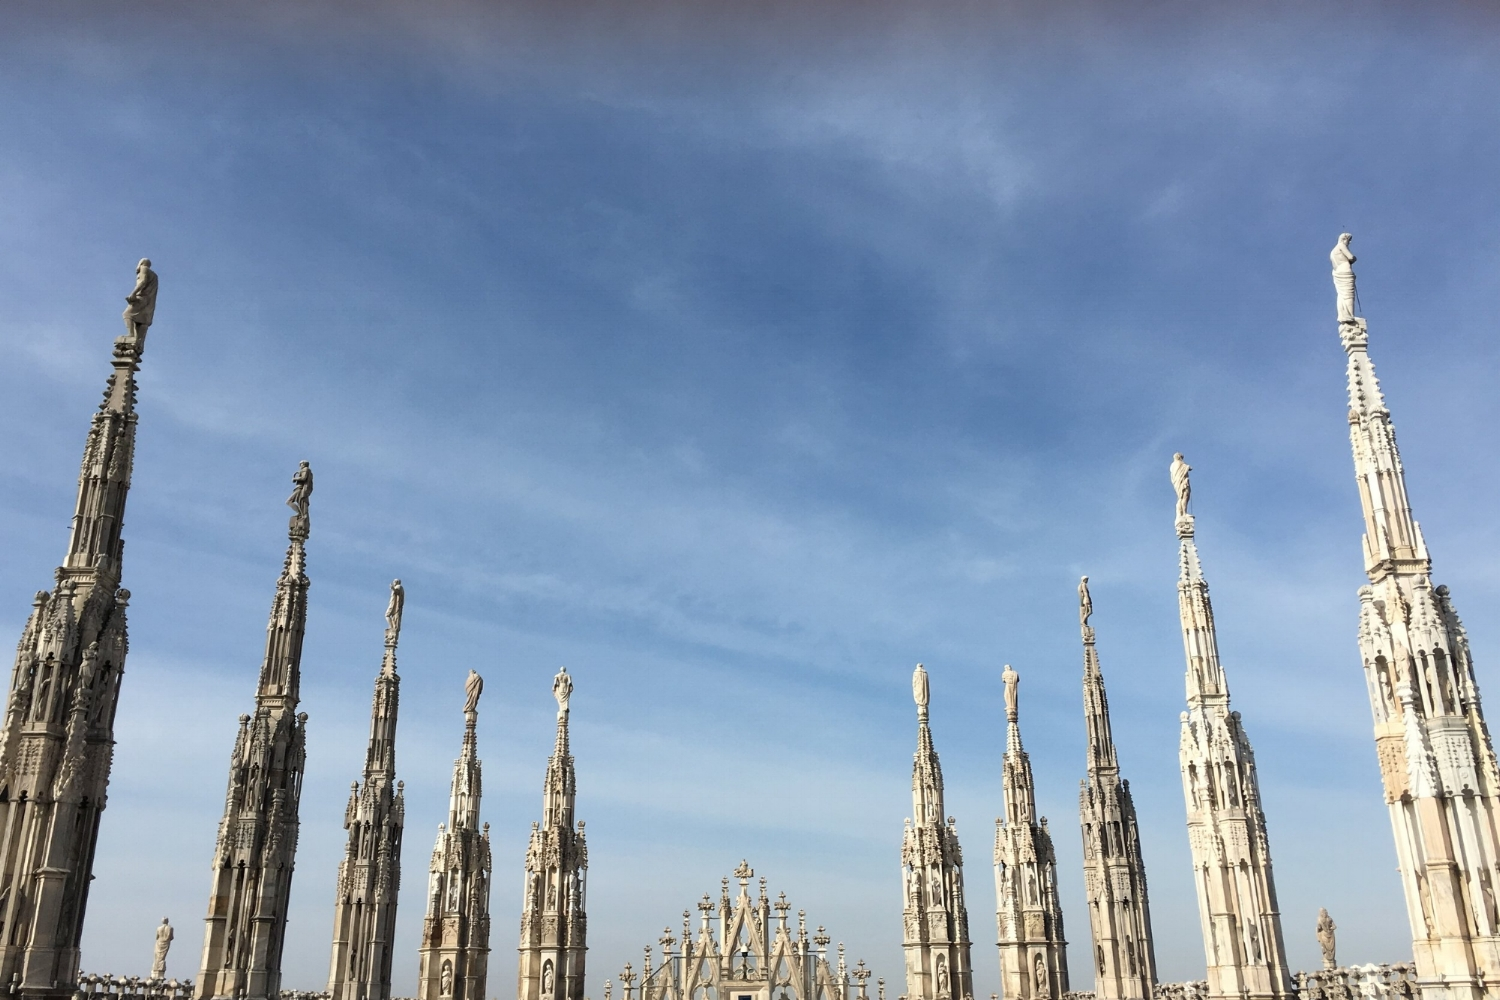 on the roof of the Duomo in Milan